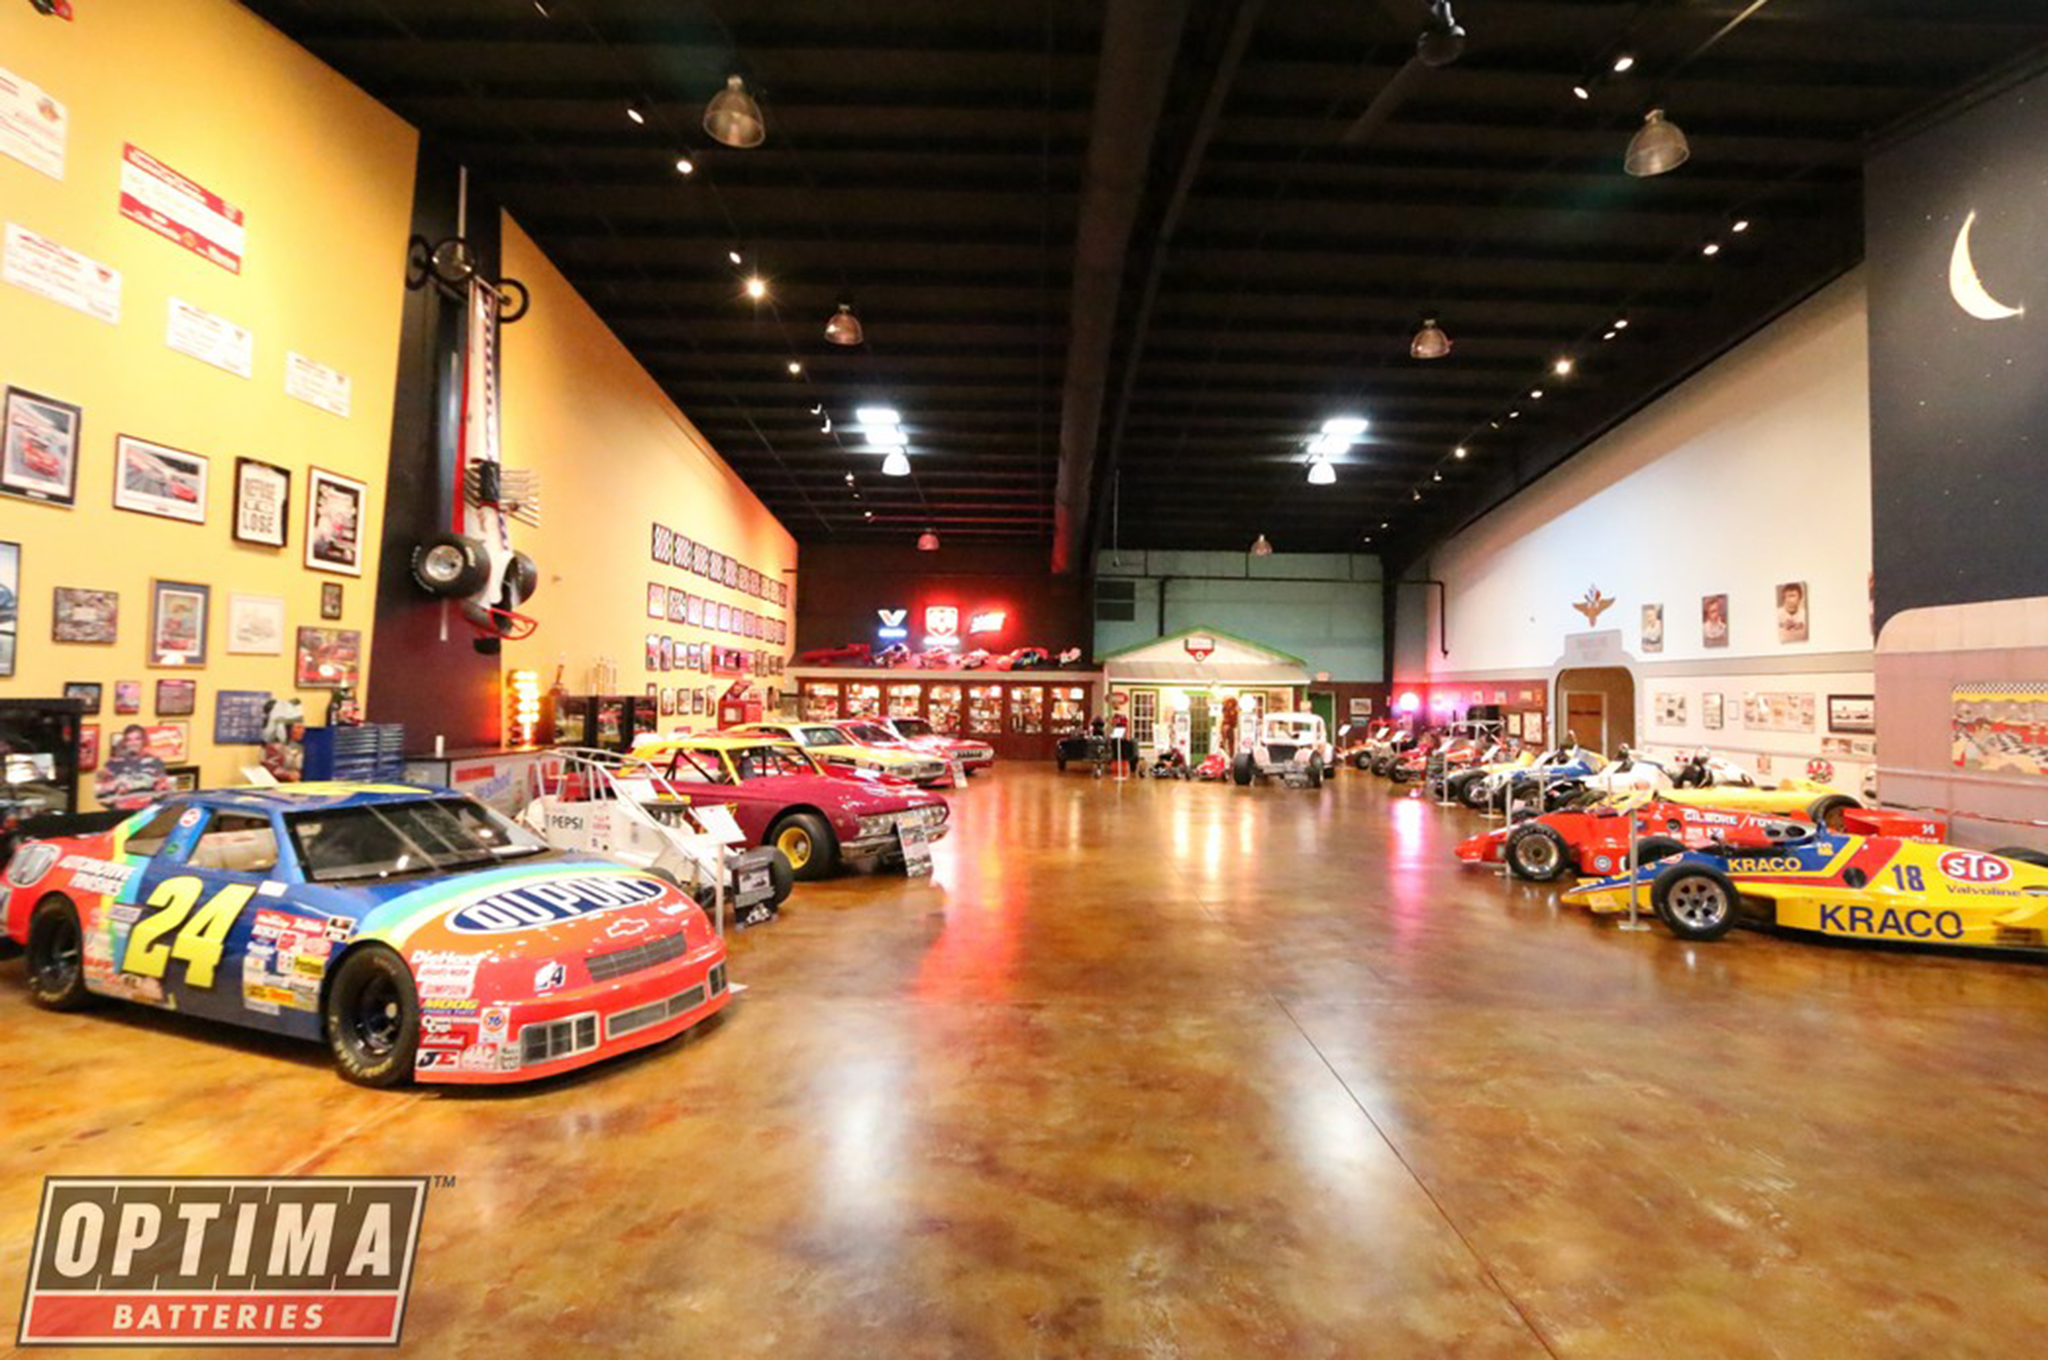 Legend Gear & Transmission arranged a private dinner and tour of Ray Evernham's shop for competitors on Friday night. This showroom was the first of four such areas, where a treasure trove of vehicles are stored and on display, from Jeff Gordon's DuPont Lumina to unrestored relics from the early days of stock car racing.